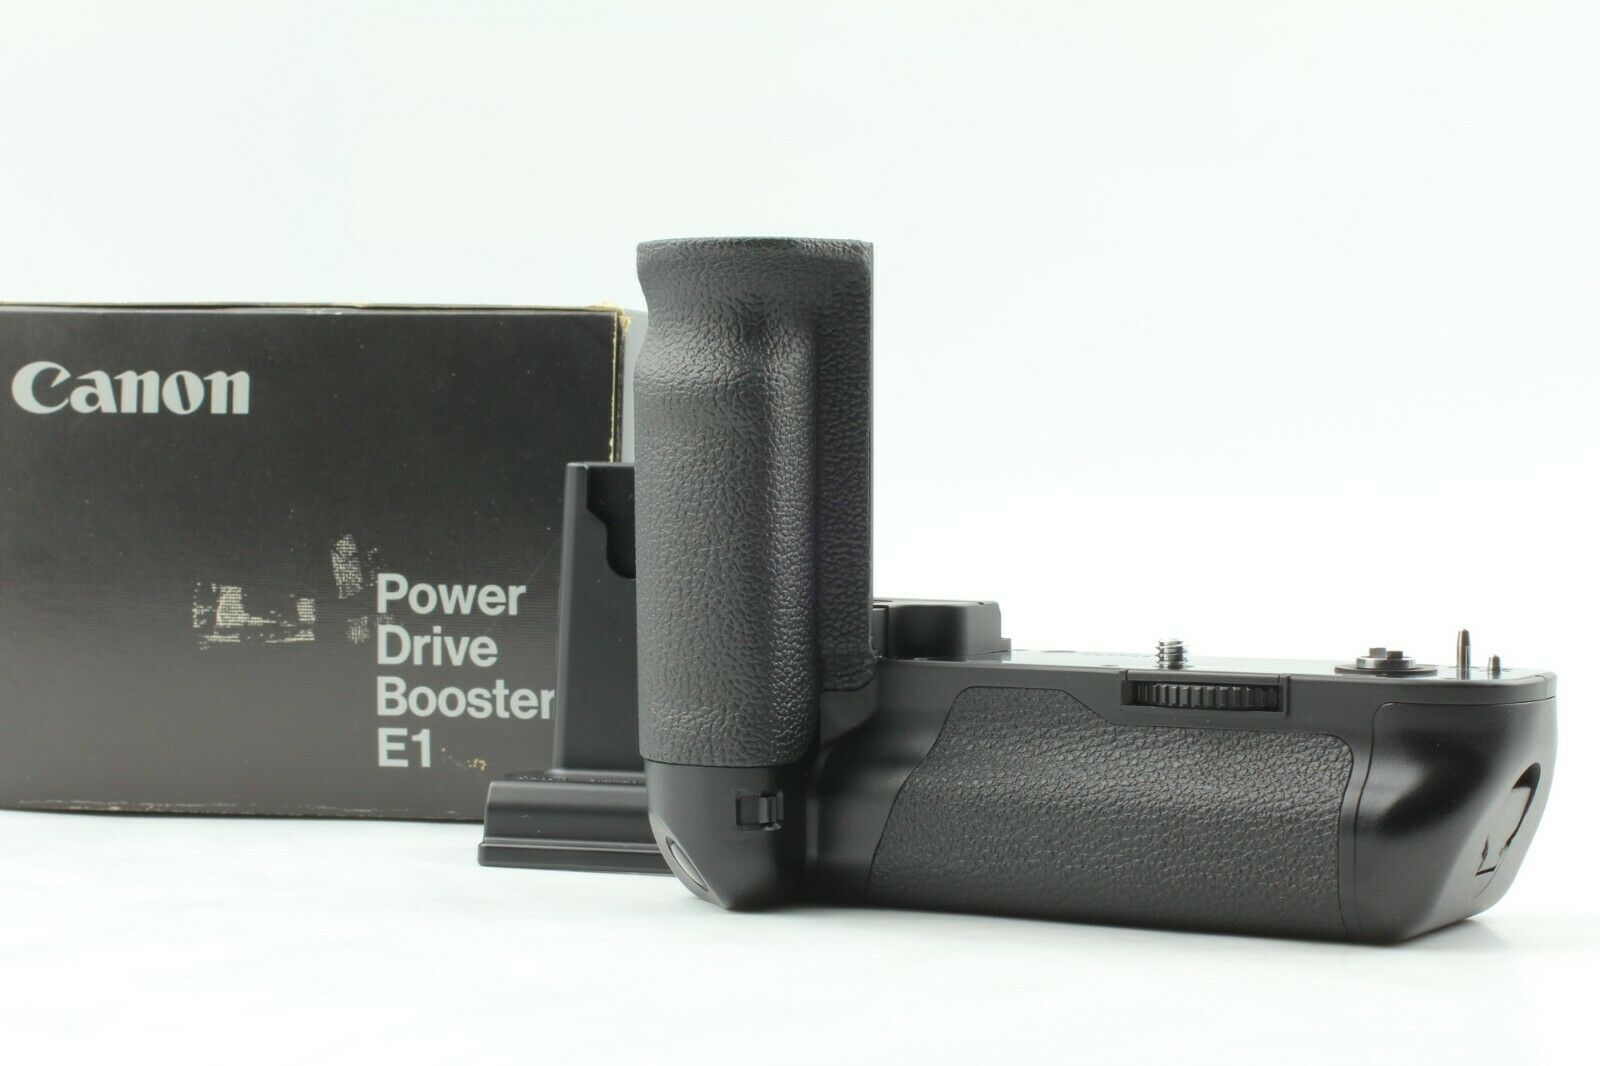 [MINT in Box] Canon PB-E1 Power Drive Booster e1 for EOS-1 1N 1V From JAPAN #121